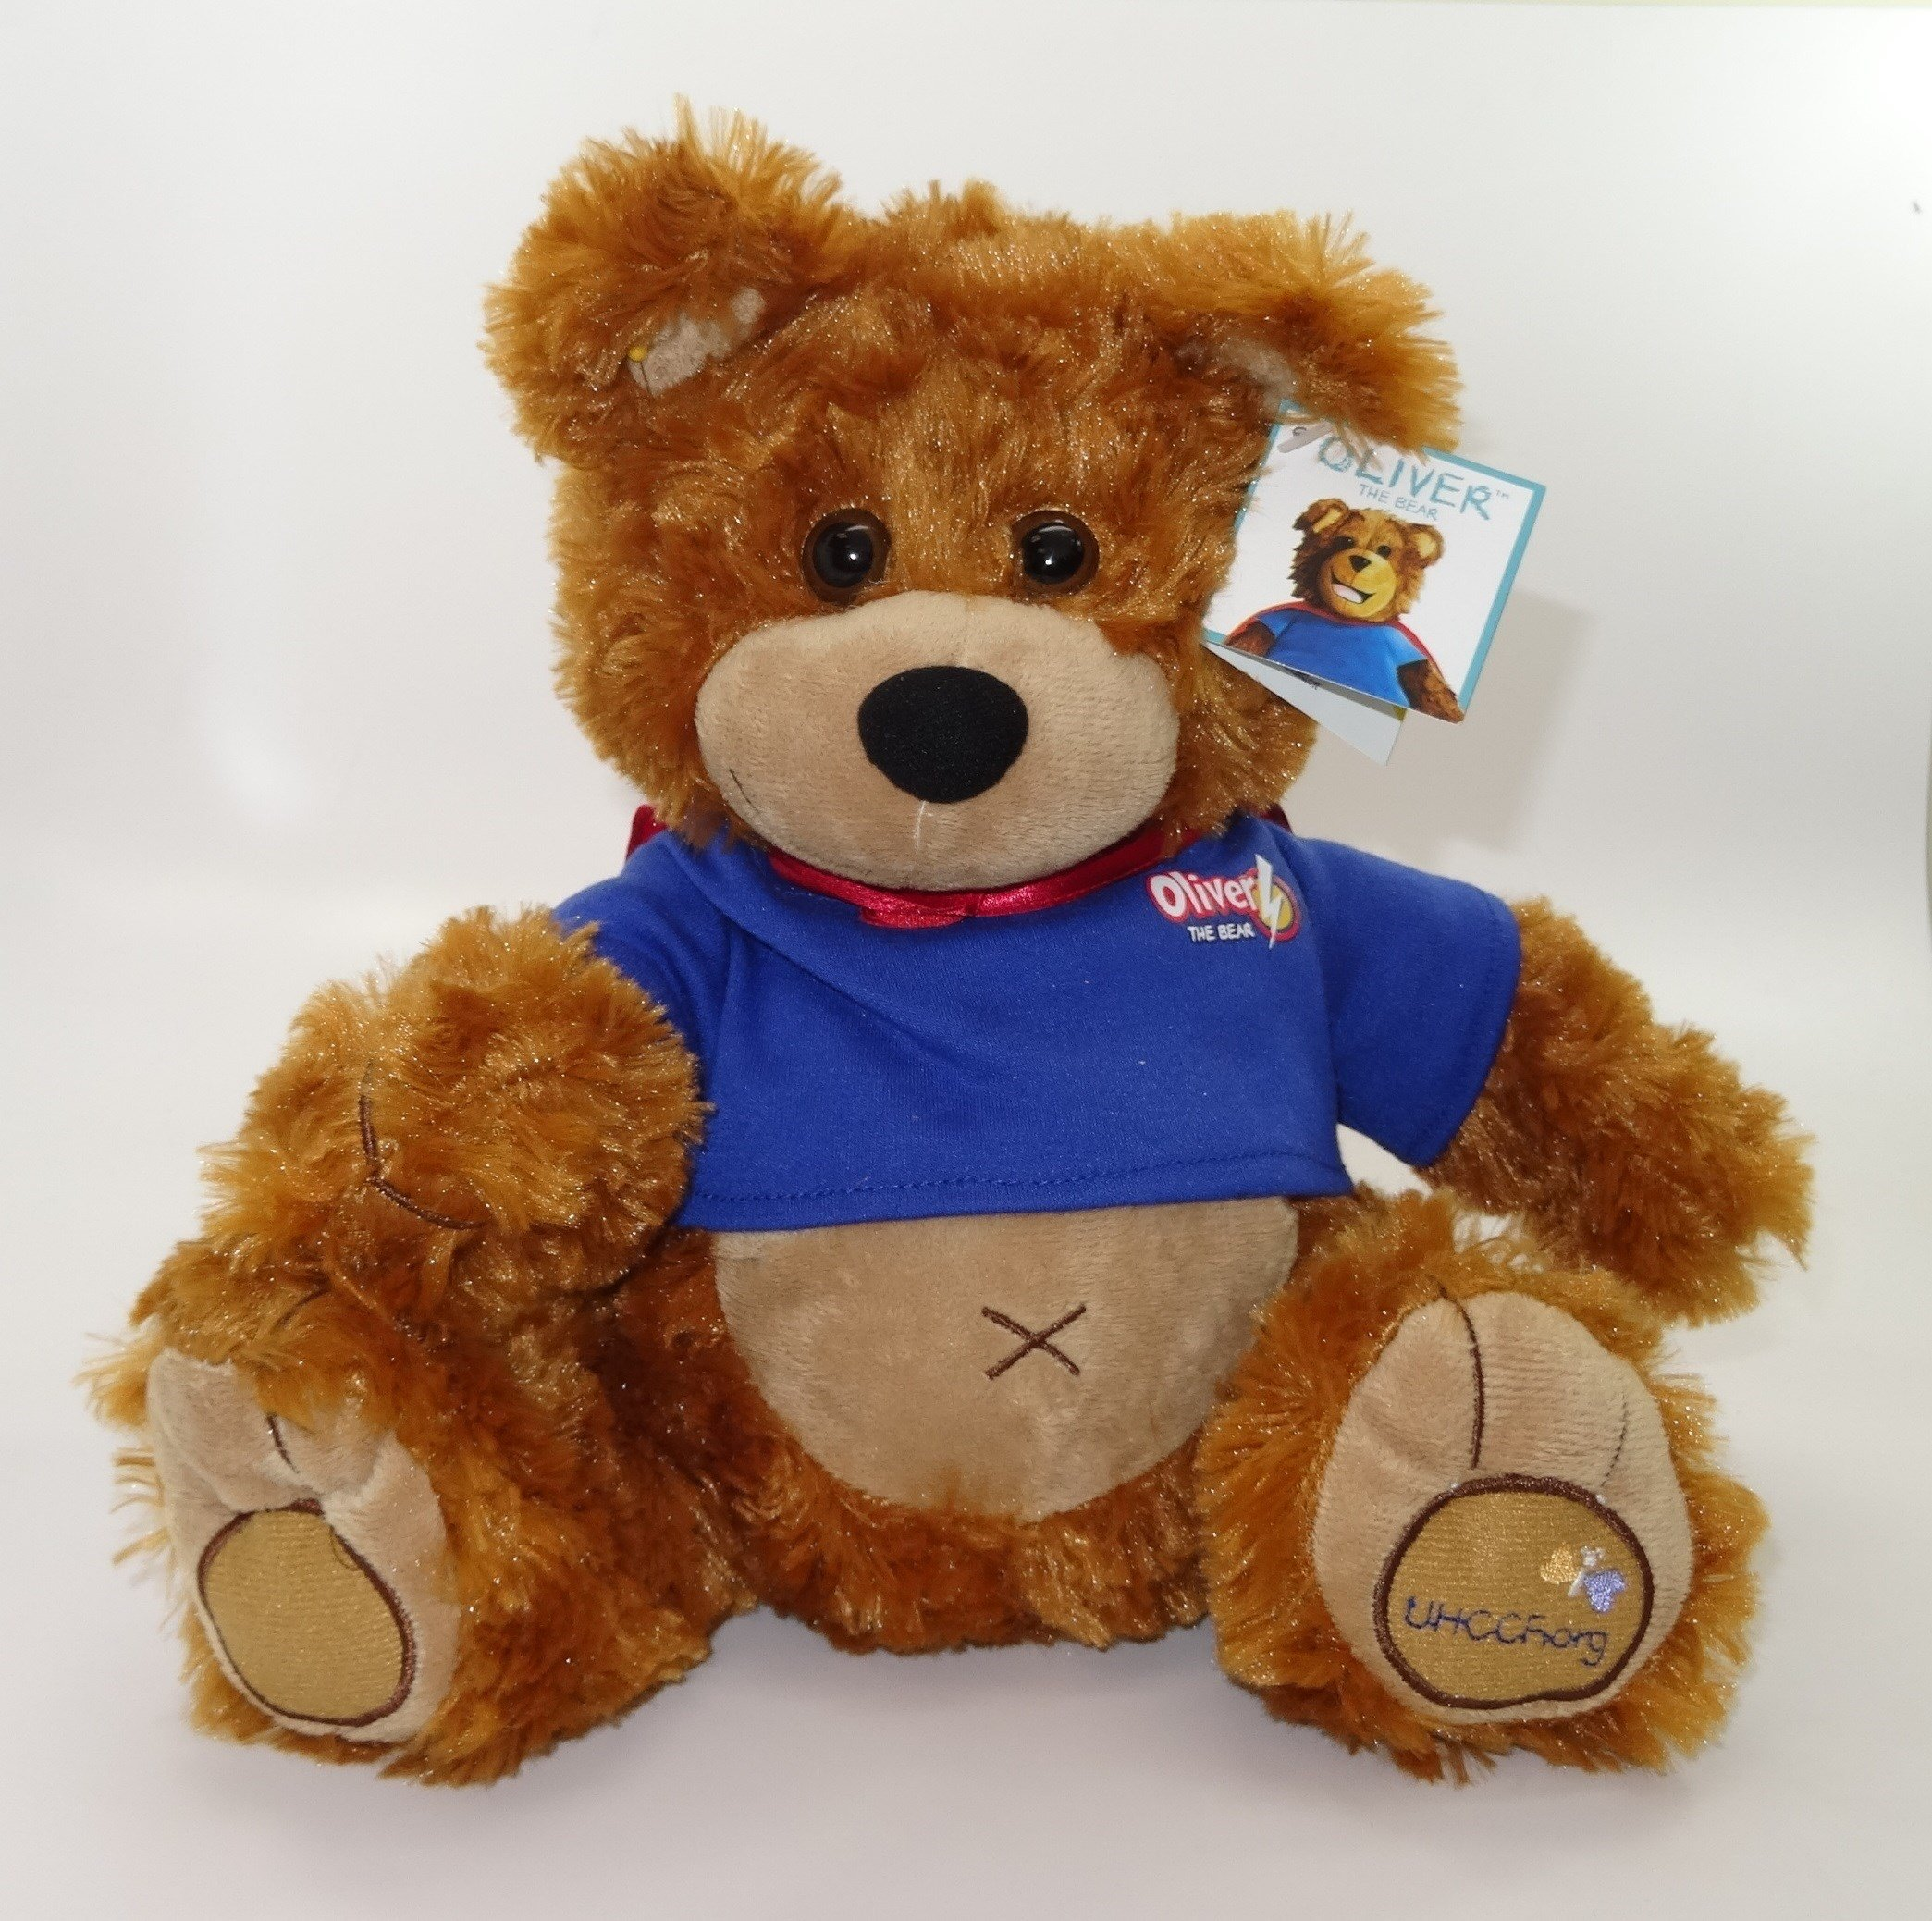 Oliver the Bear (Photo courtesy Consumer Product Safety Commission)